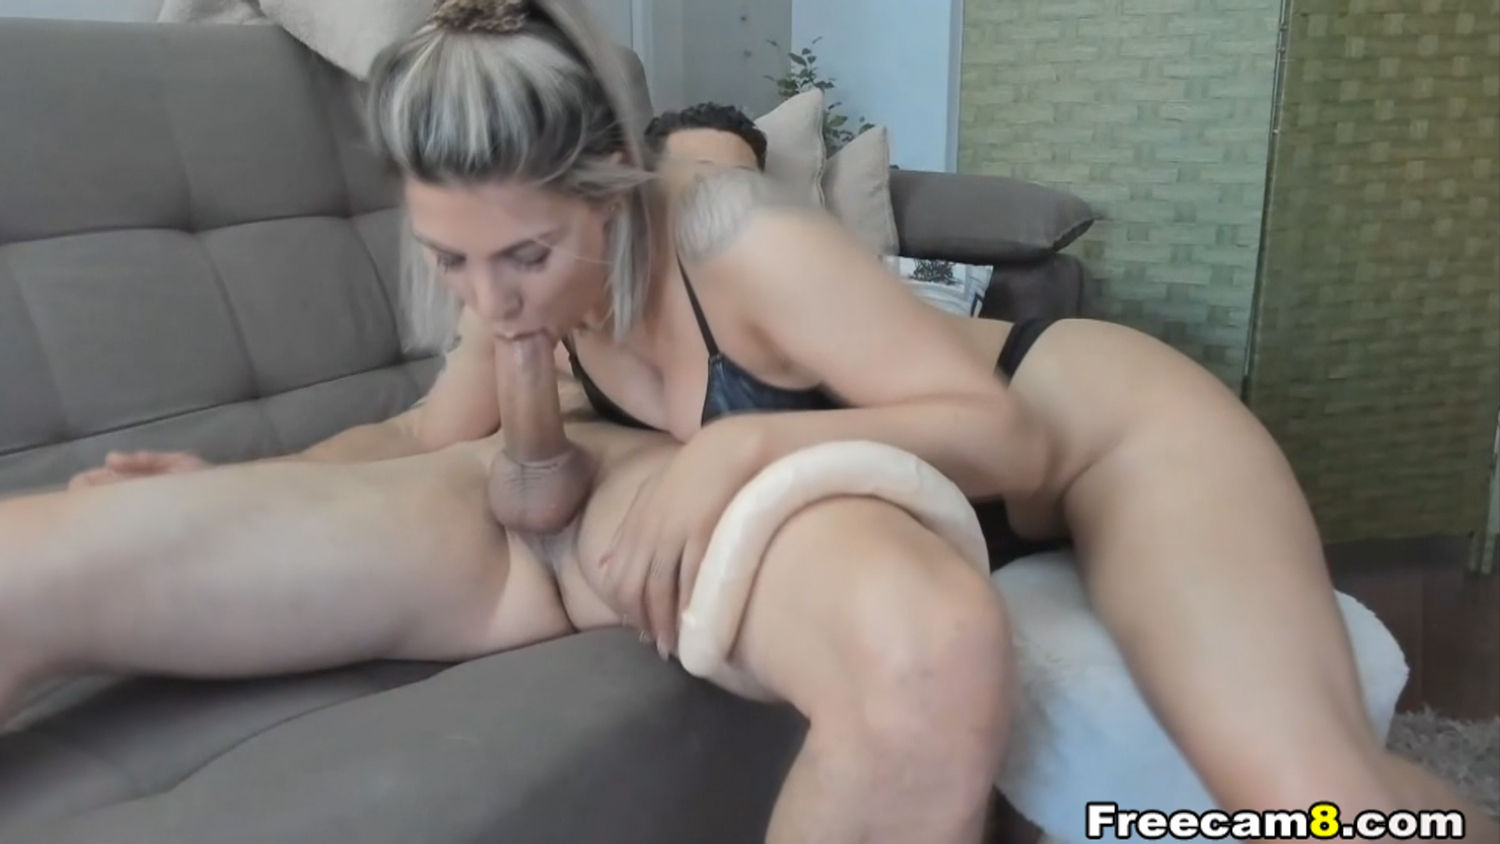 Wild Blonde Gives an Amazing Blowjob